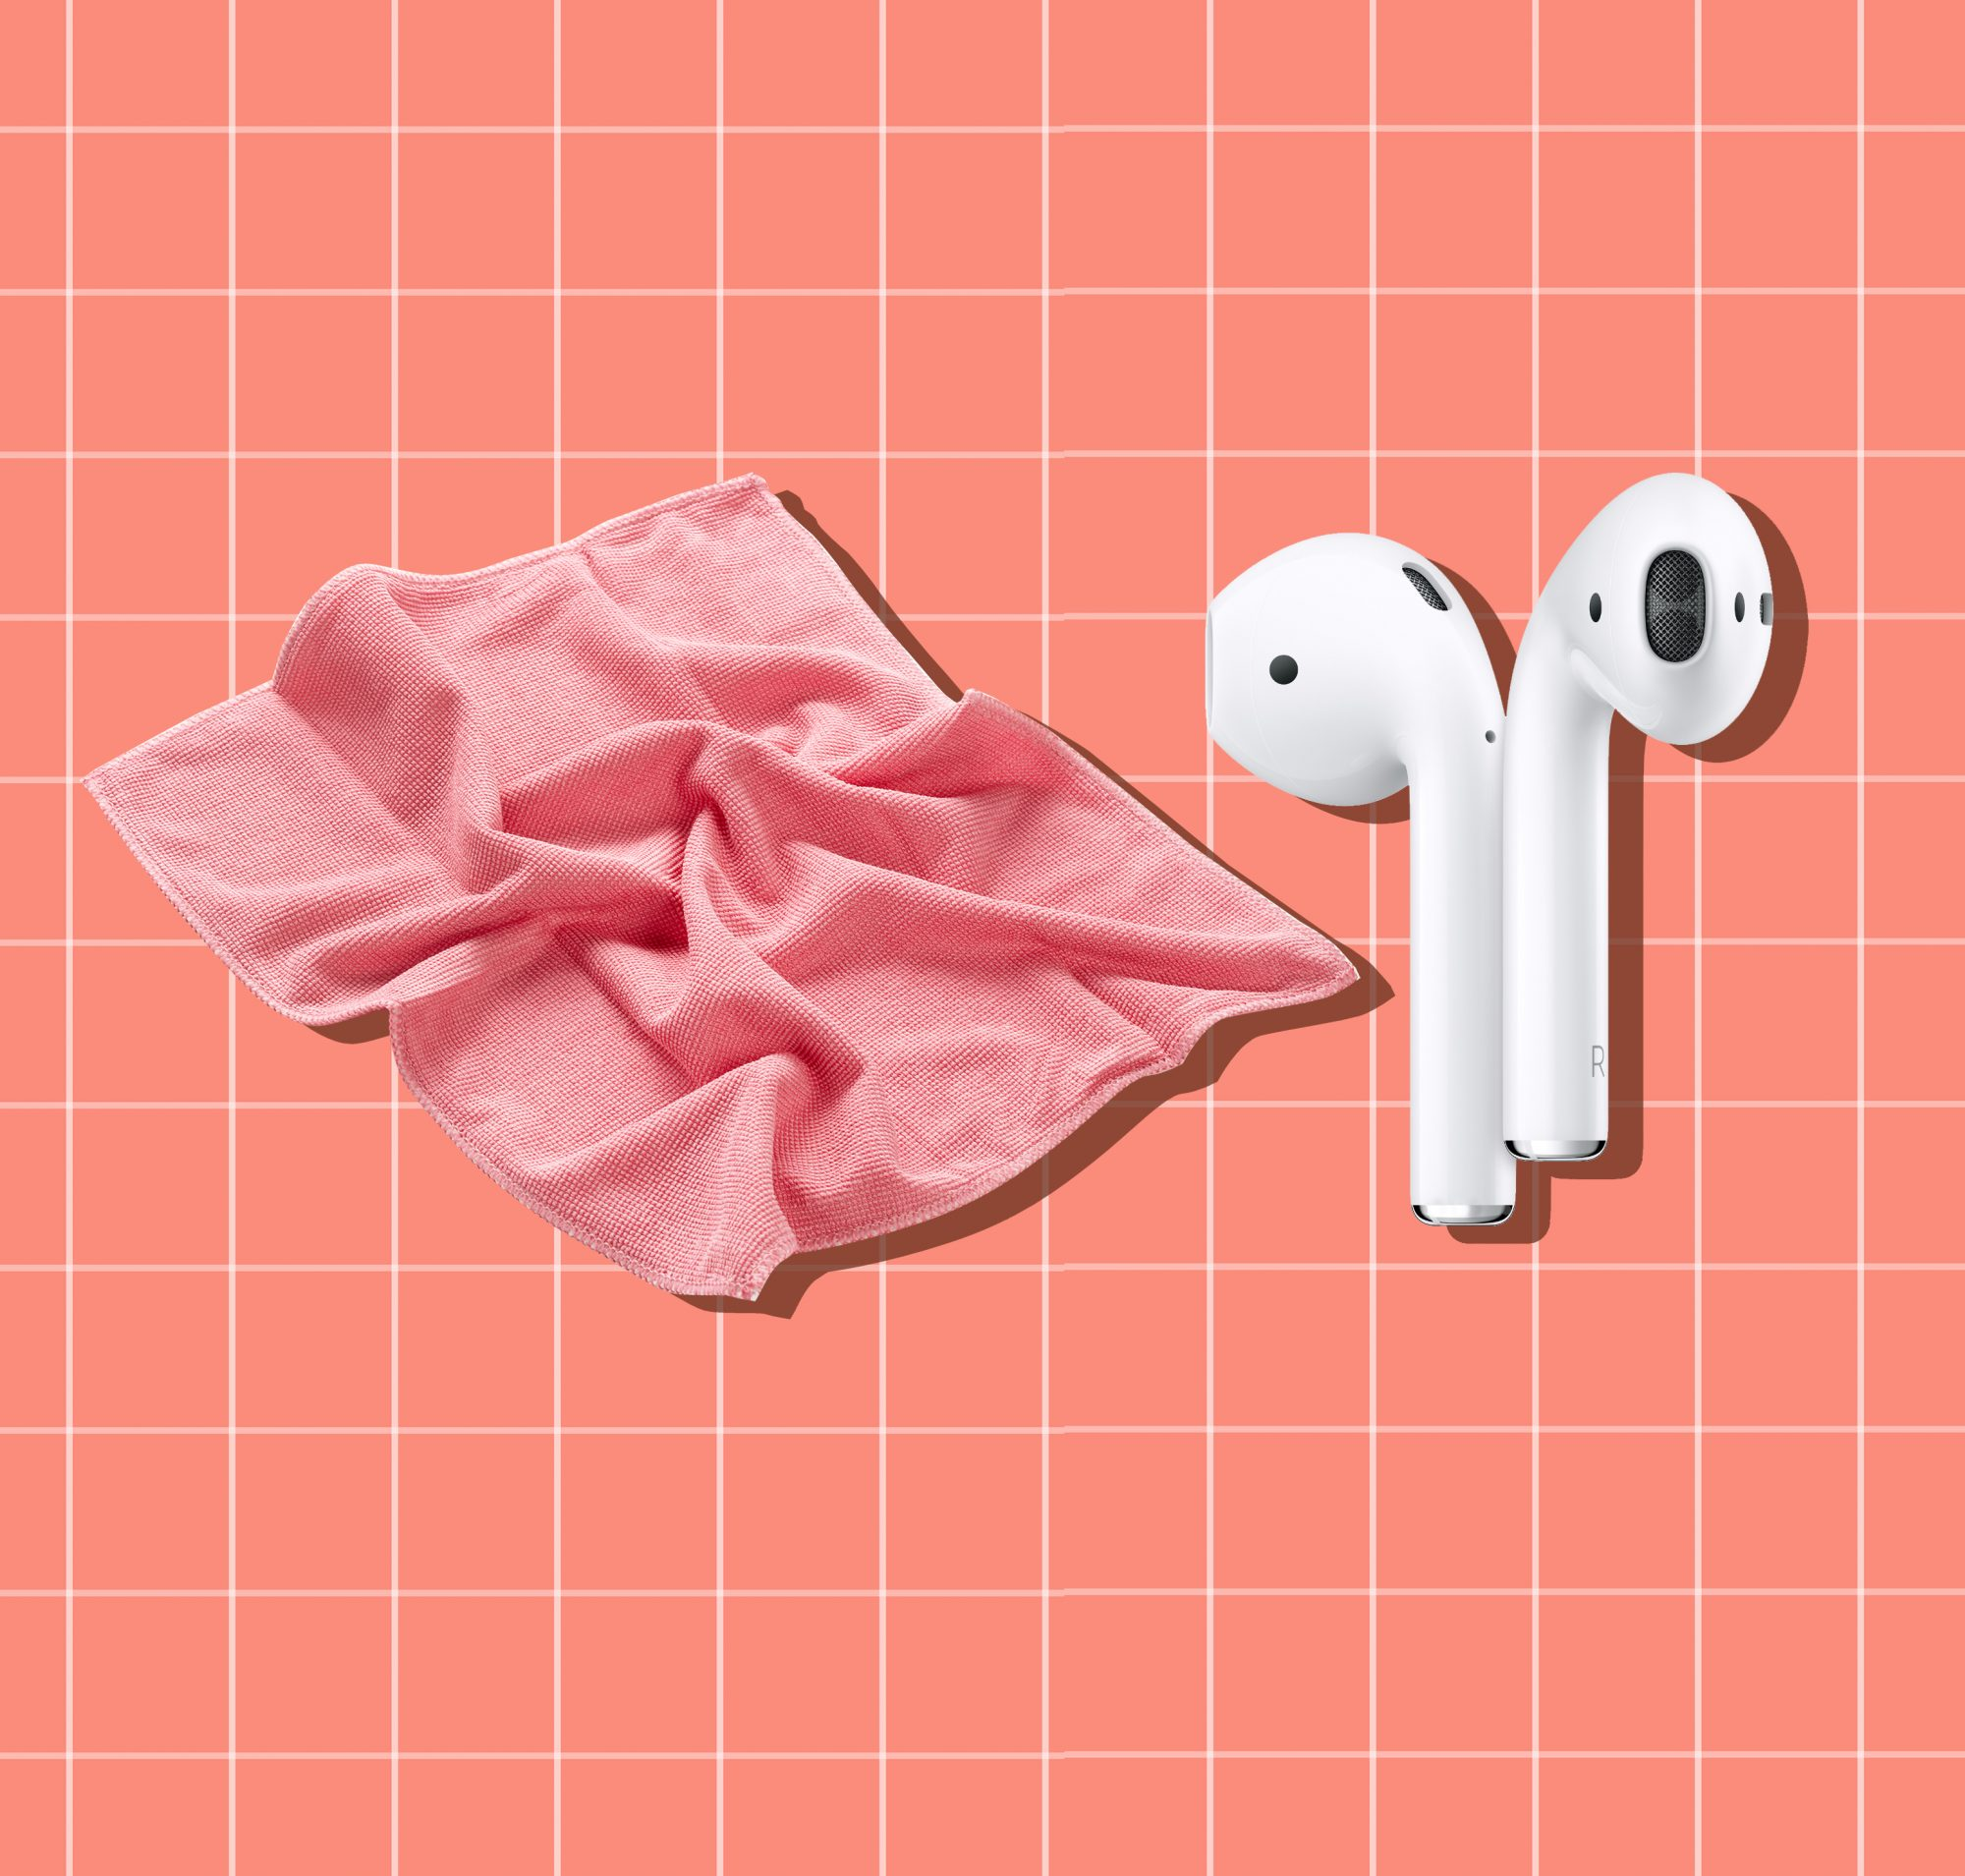 How to Clean Your AirPods (and Their Case) Without Destroying Them